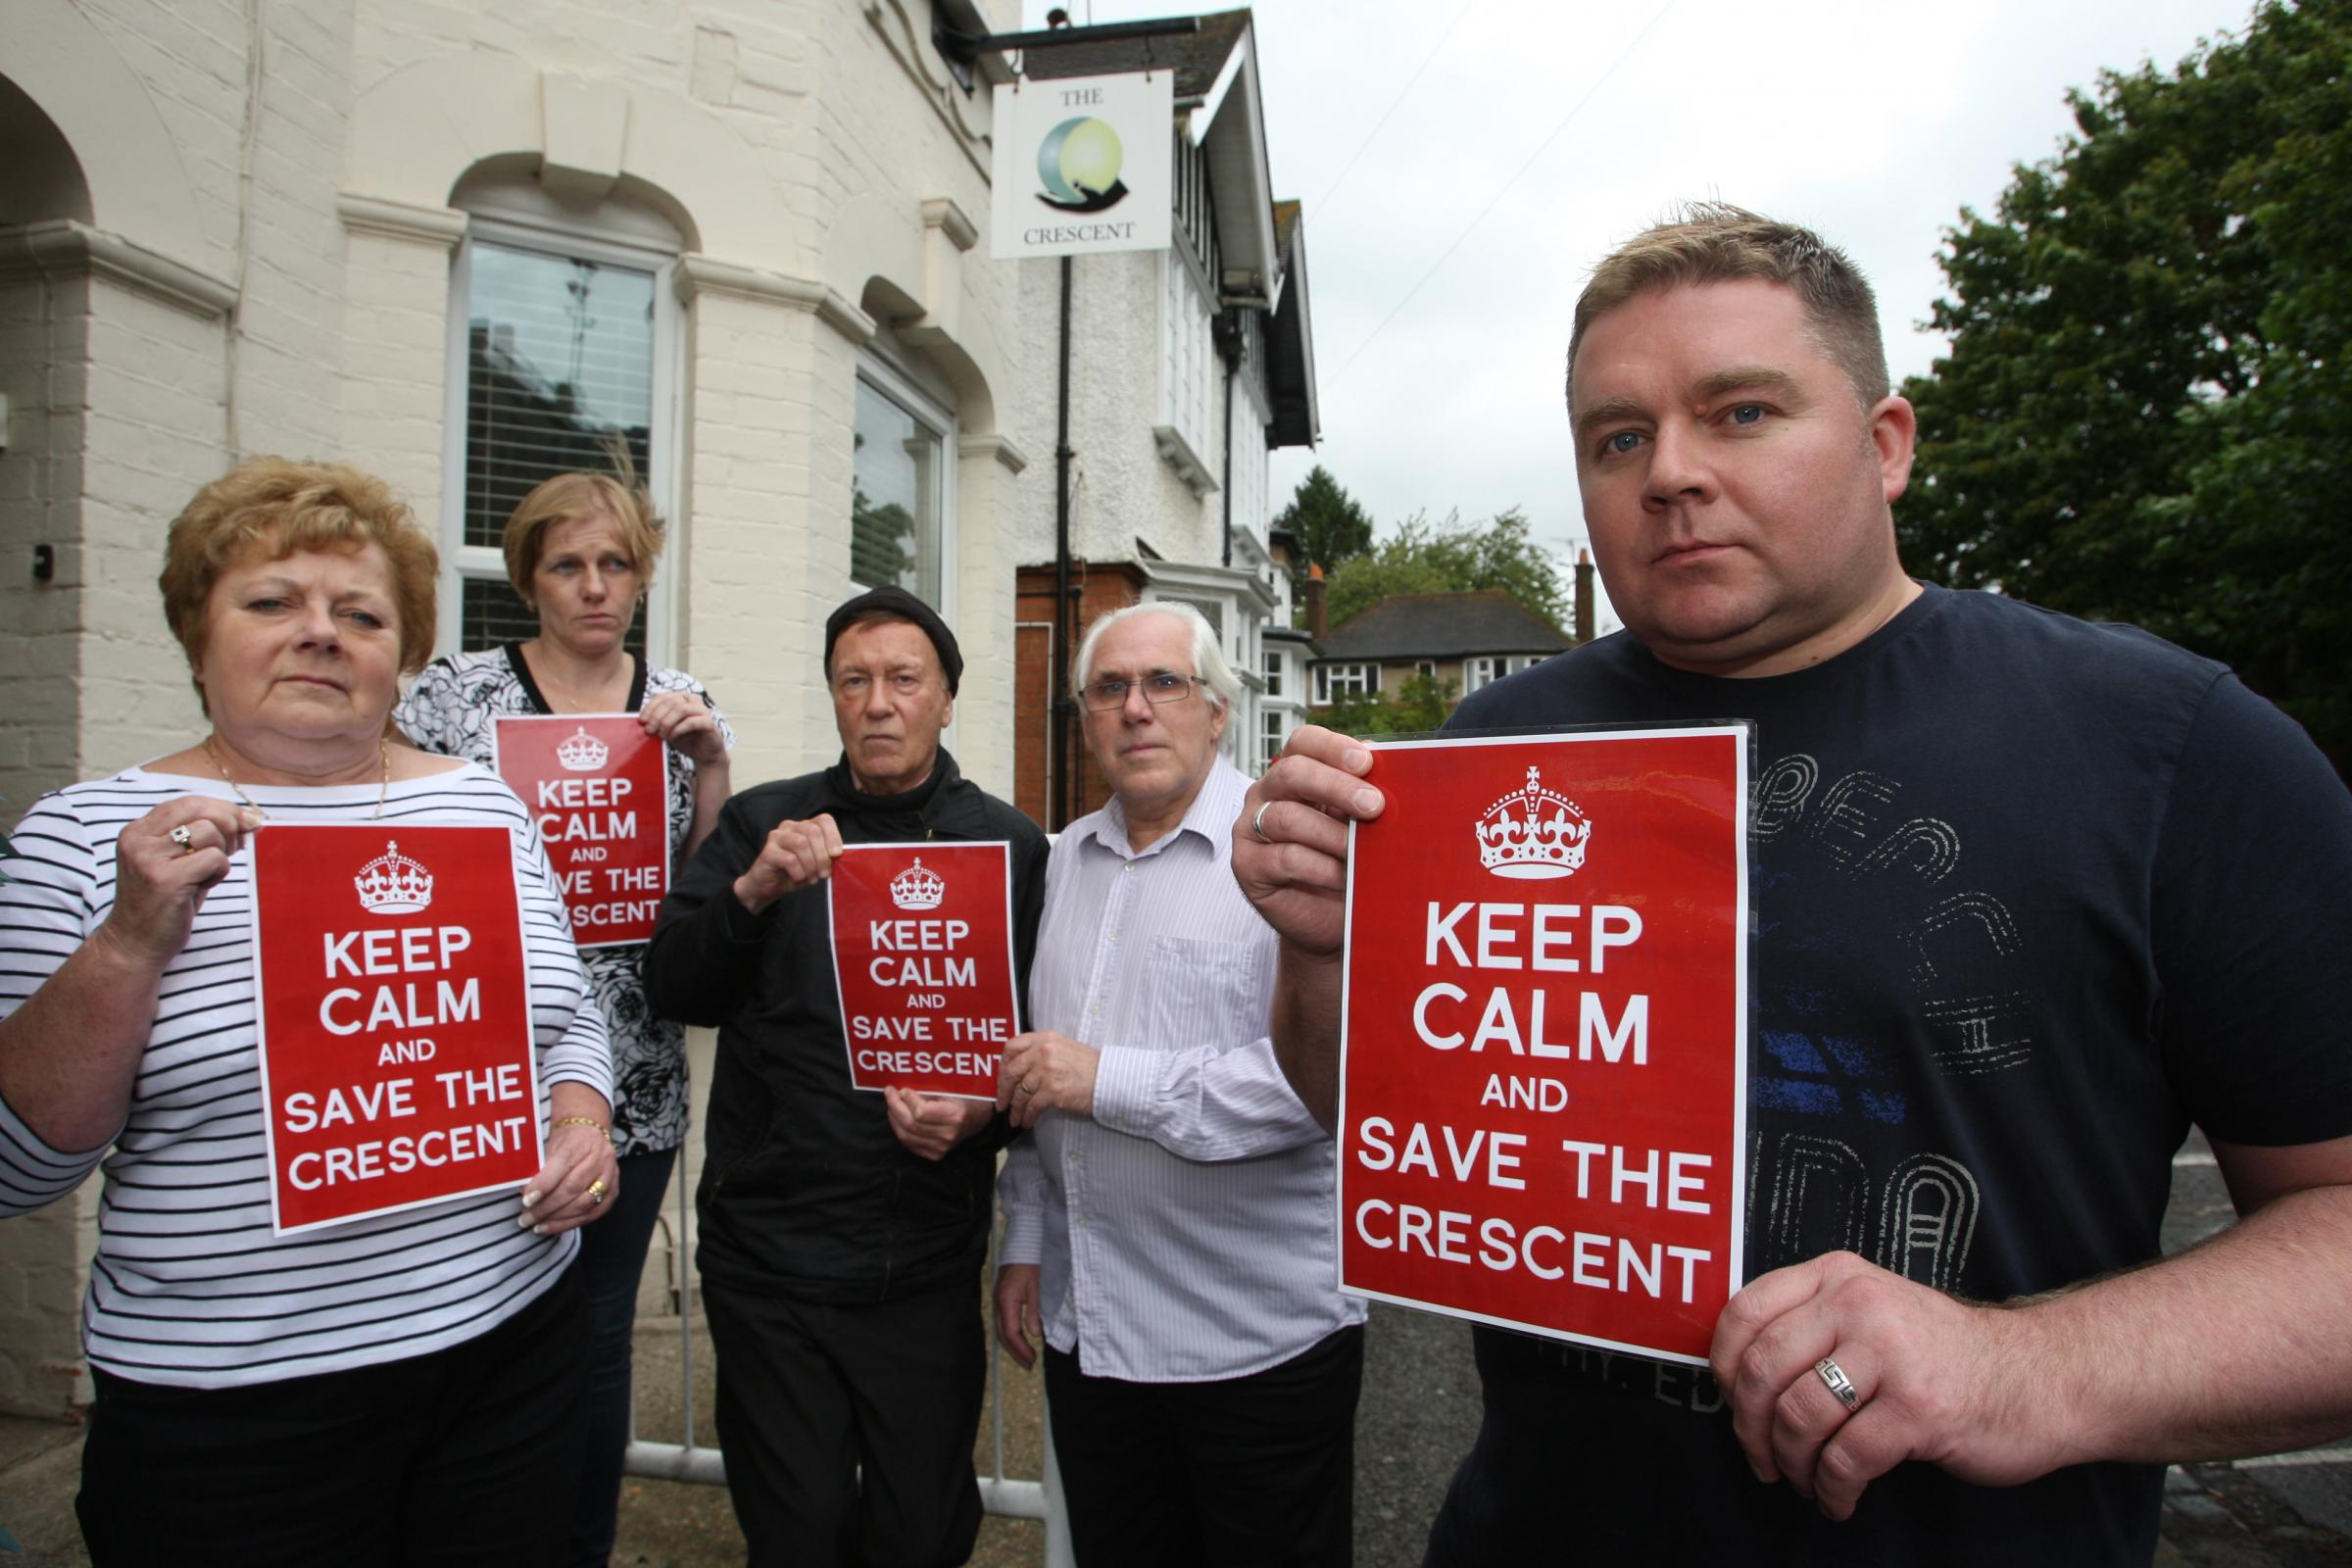 Ian Murtagh and protesters meet to save the Crescent